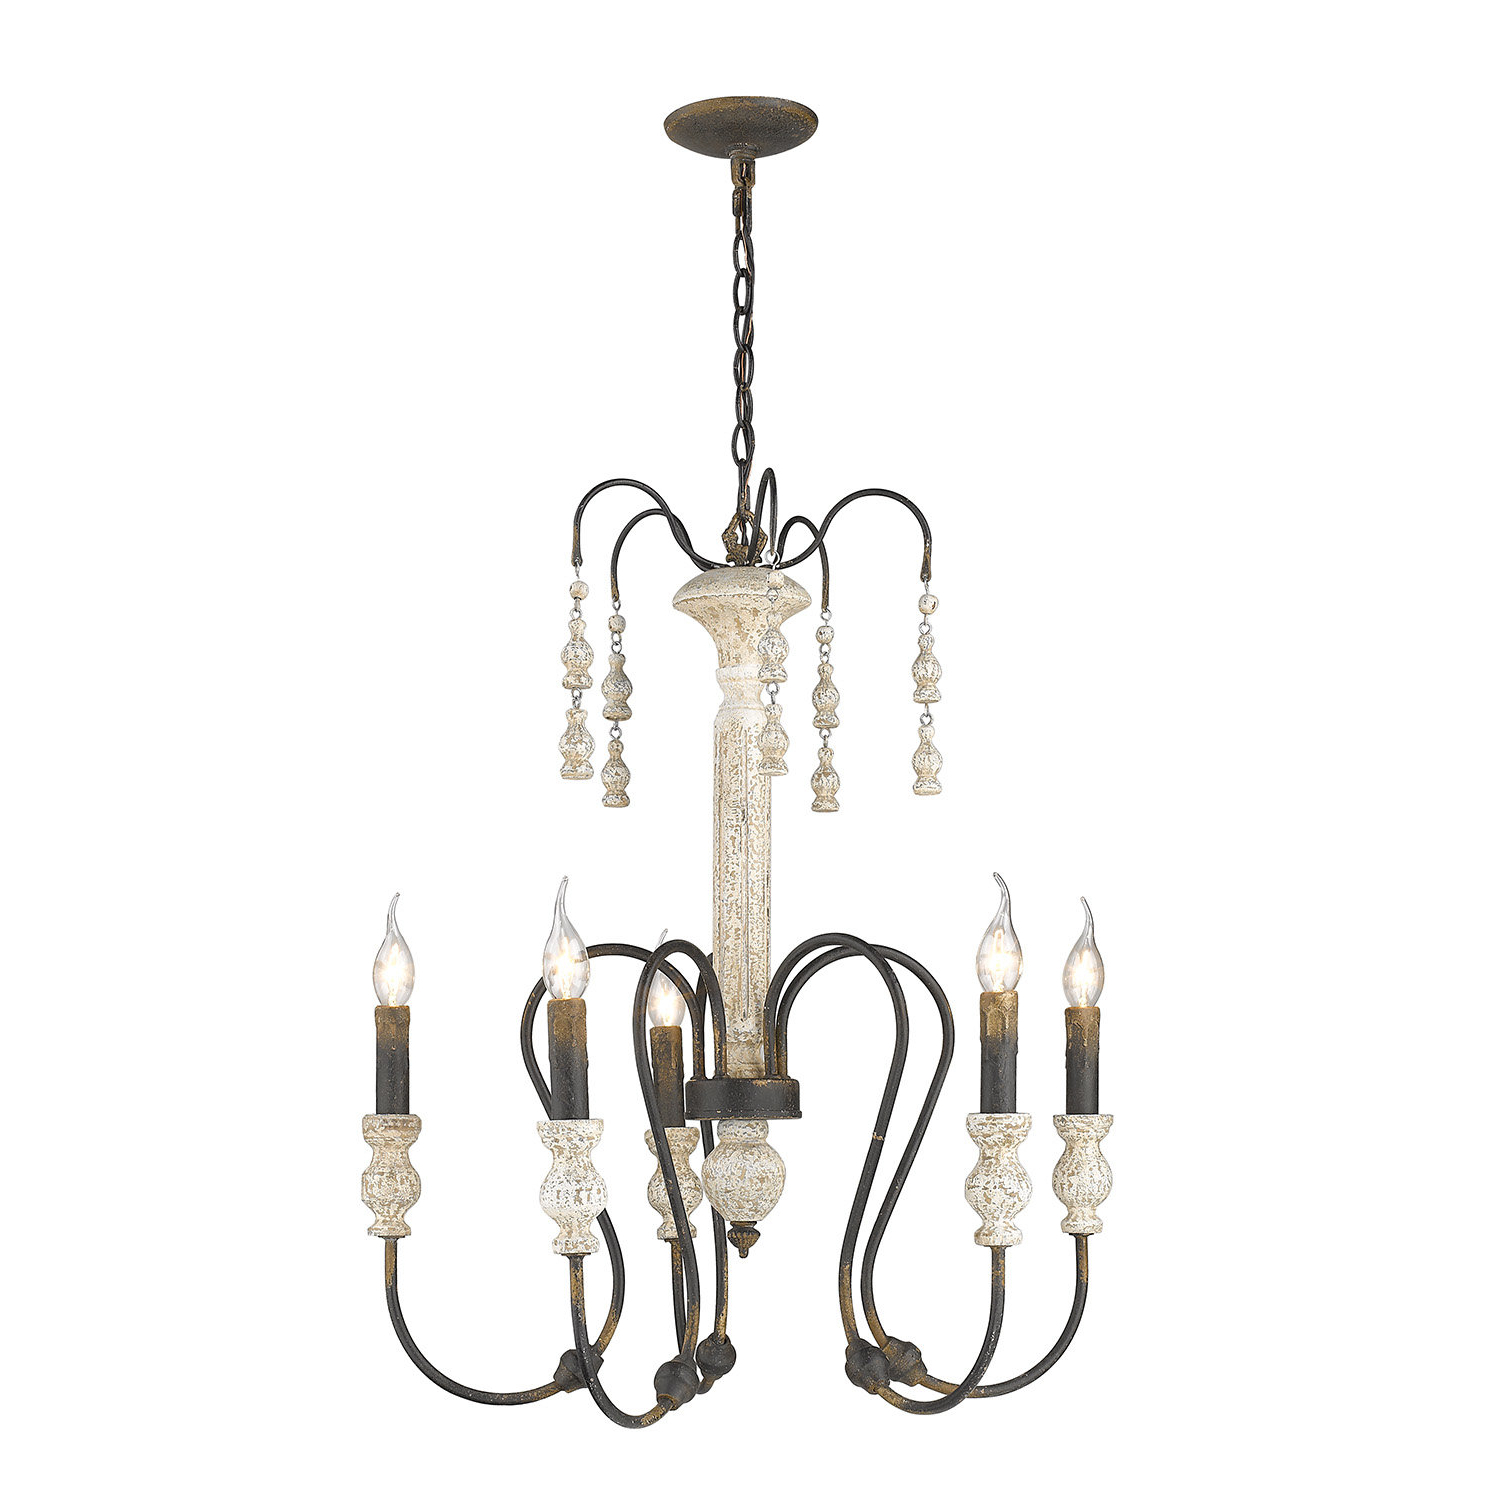 Newest Corneau 5 Light Chandeliers With Regard To Sherrie 5 Light Candle Style Chandelier (View 2 of 25)